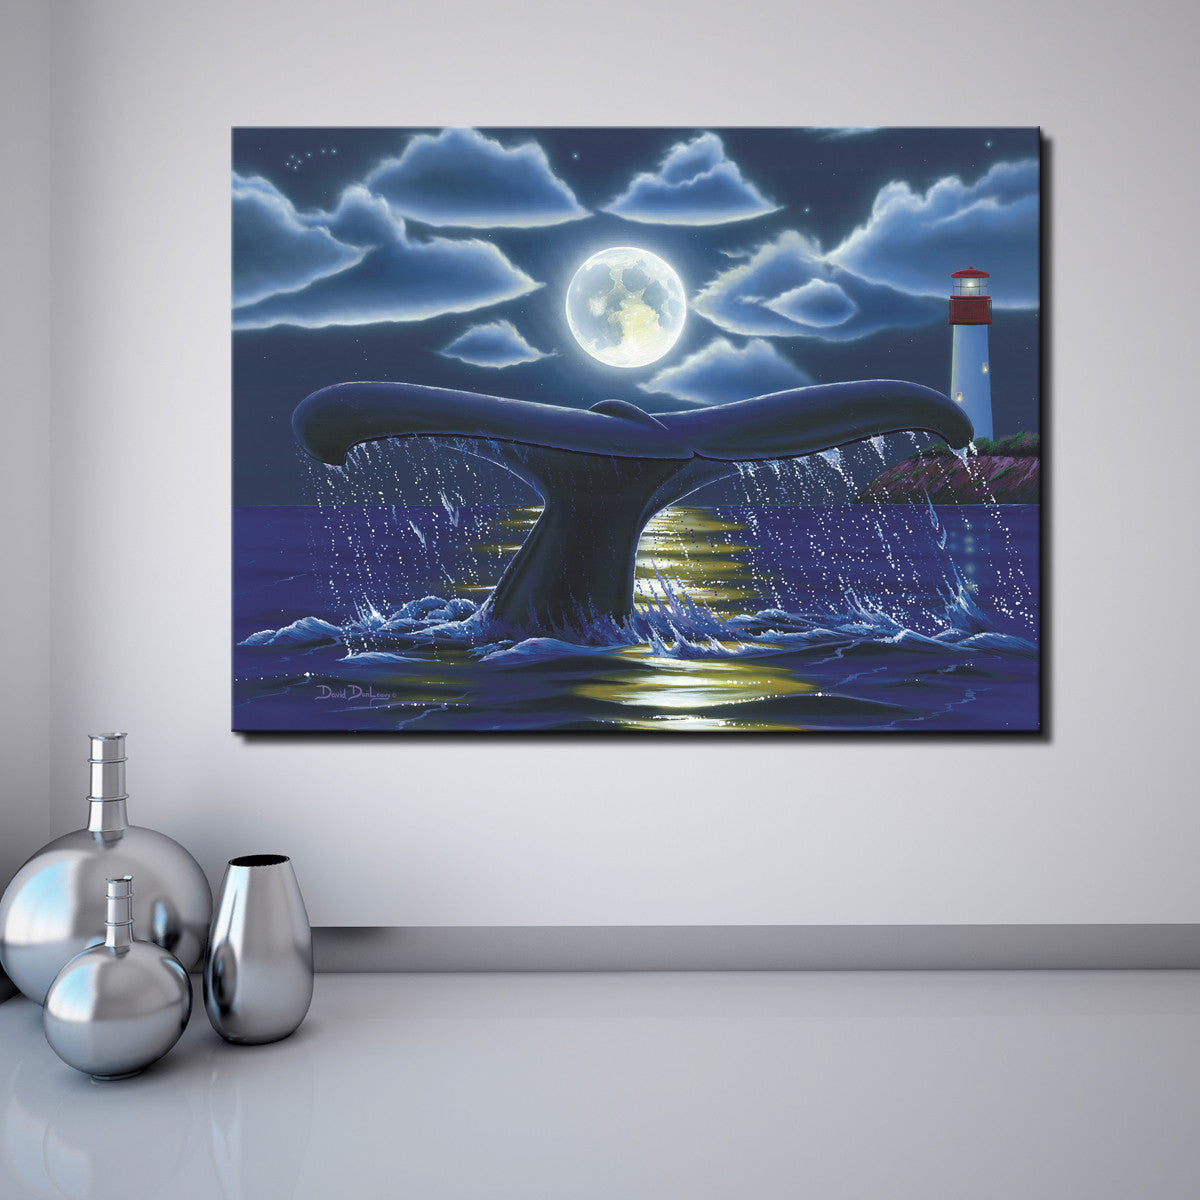 David Dunleavy 'Destiny' Canvas Wall Art